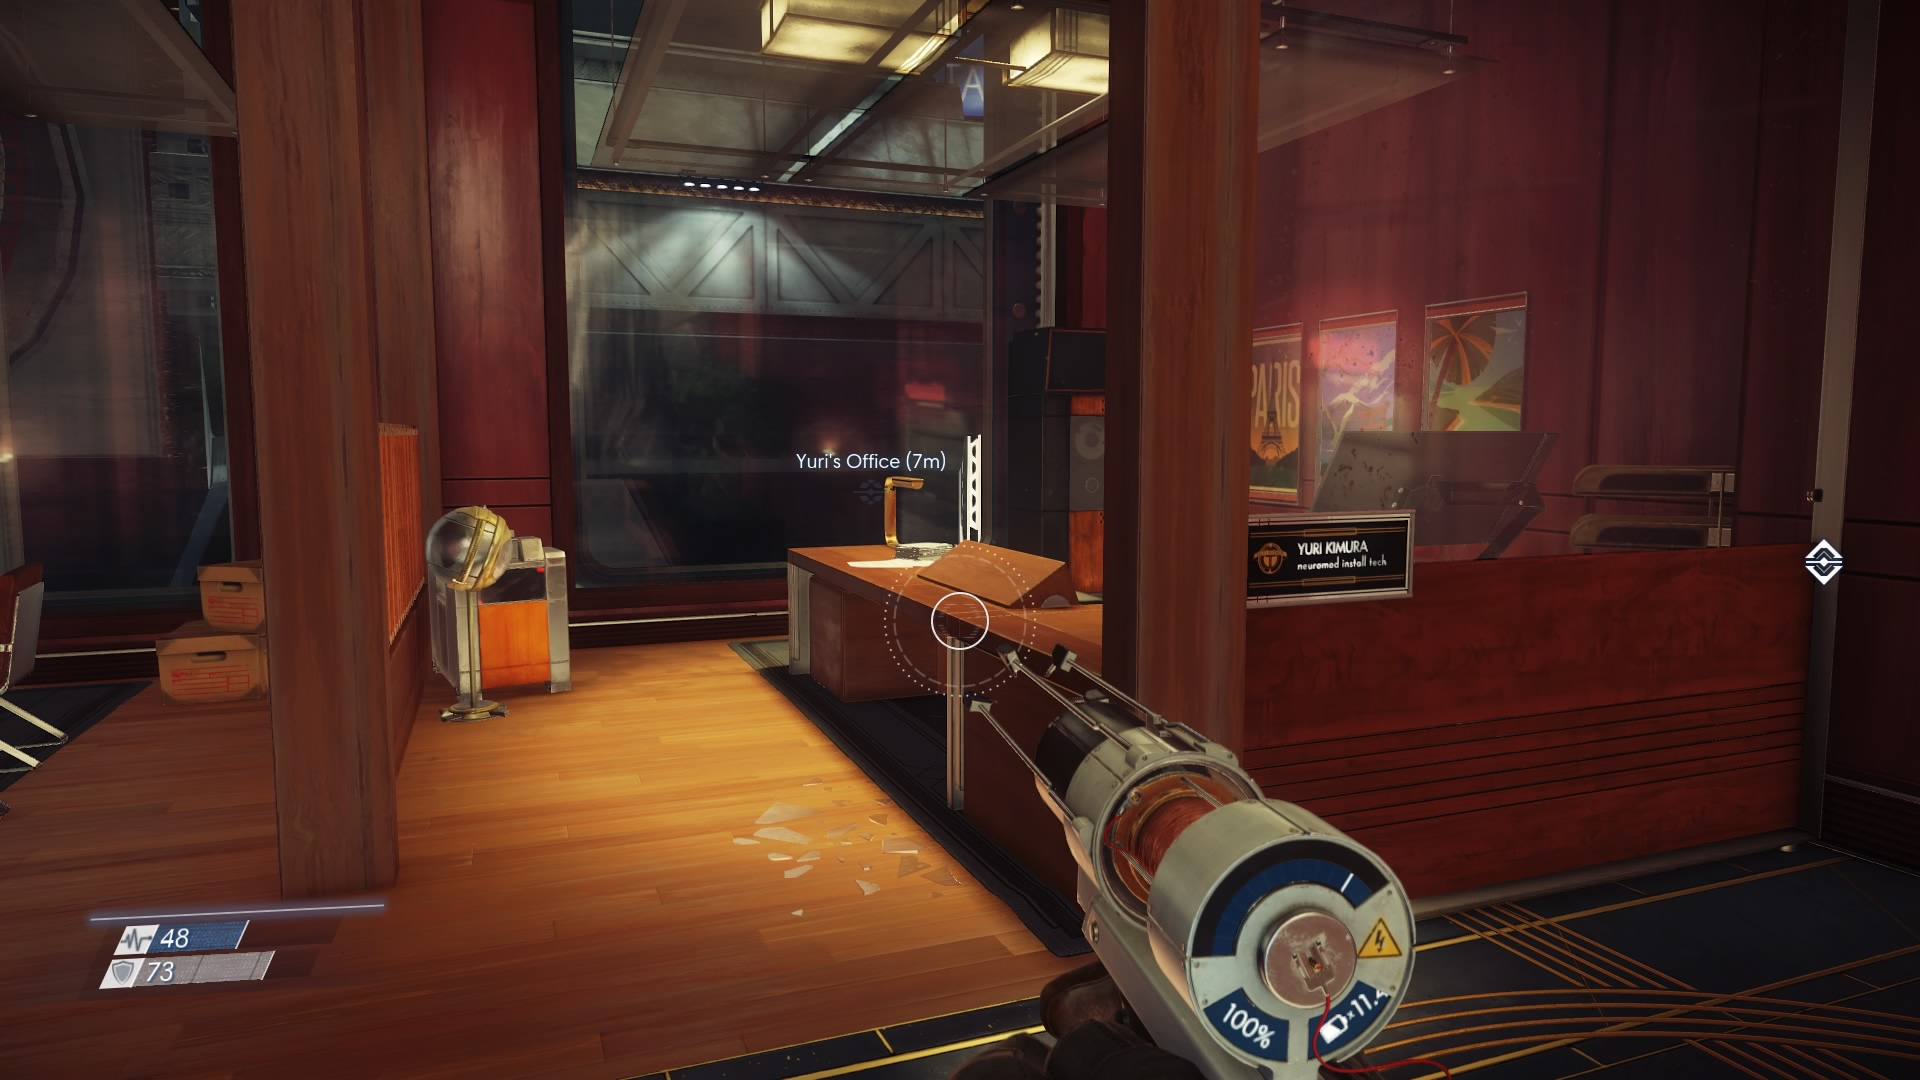 lobby sofa crossword where to buy in jb prey 2017 all collectibles locations guide talos 1